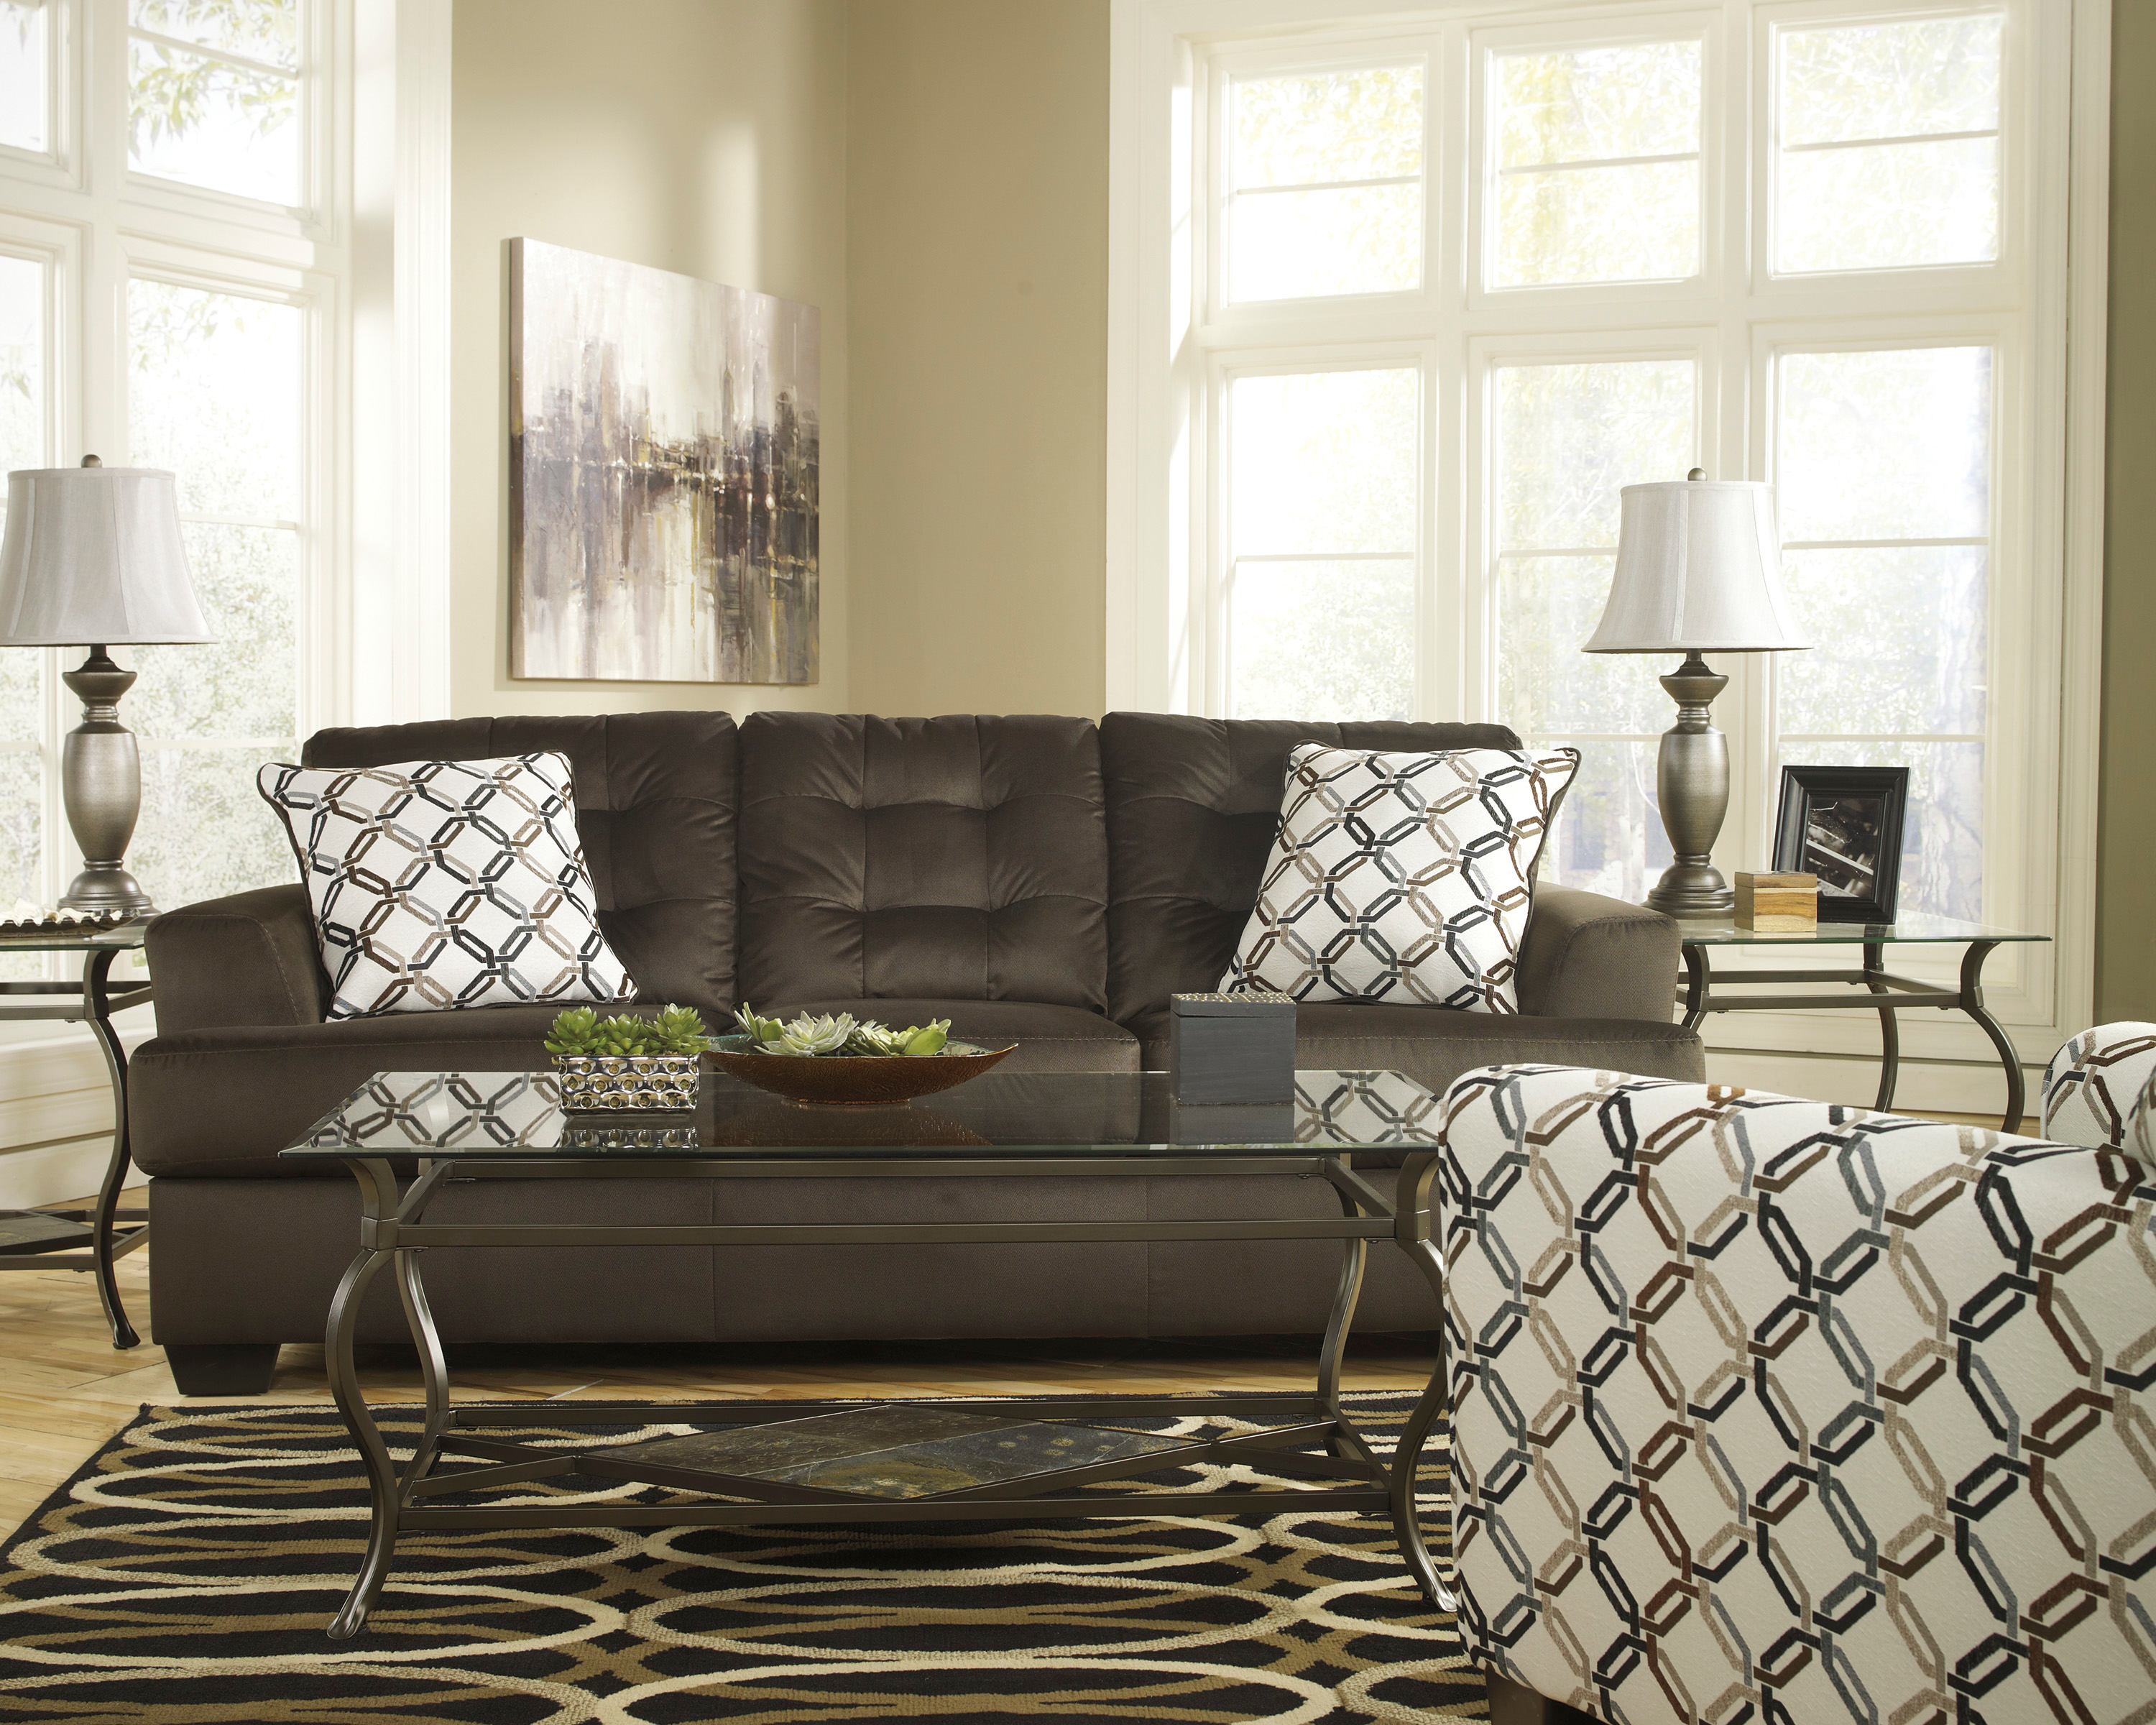 Furniture Leasing Stores Near Me Empire Furniture Rental Coupons Near Me In Maryland Empire